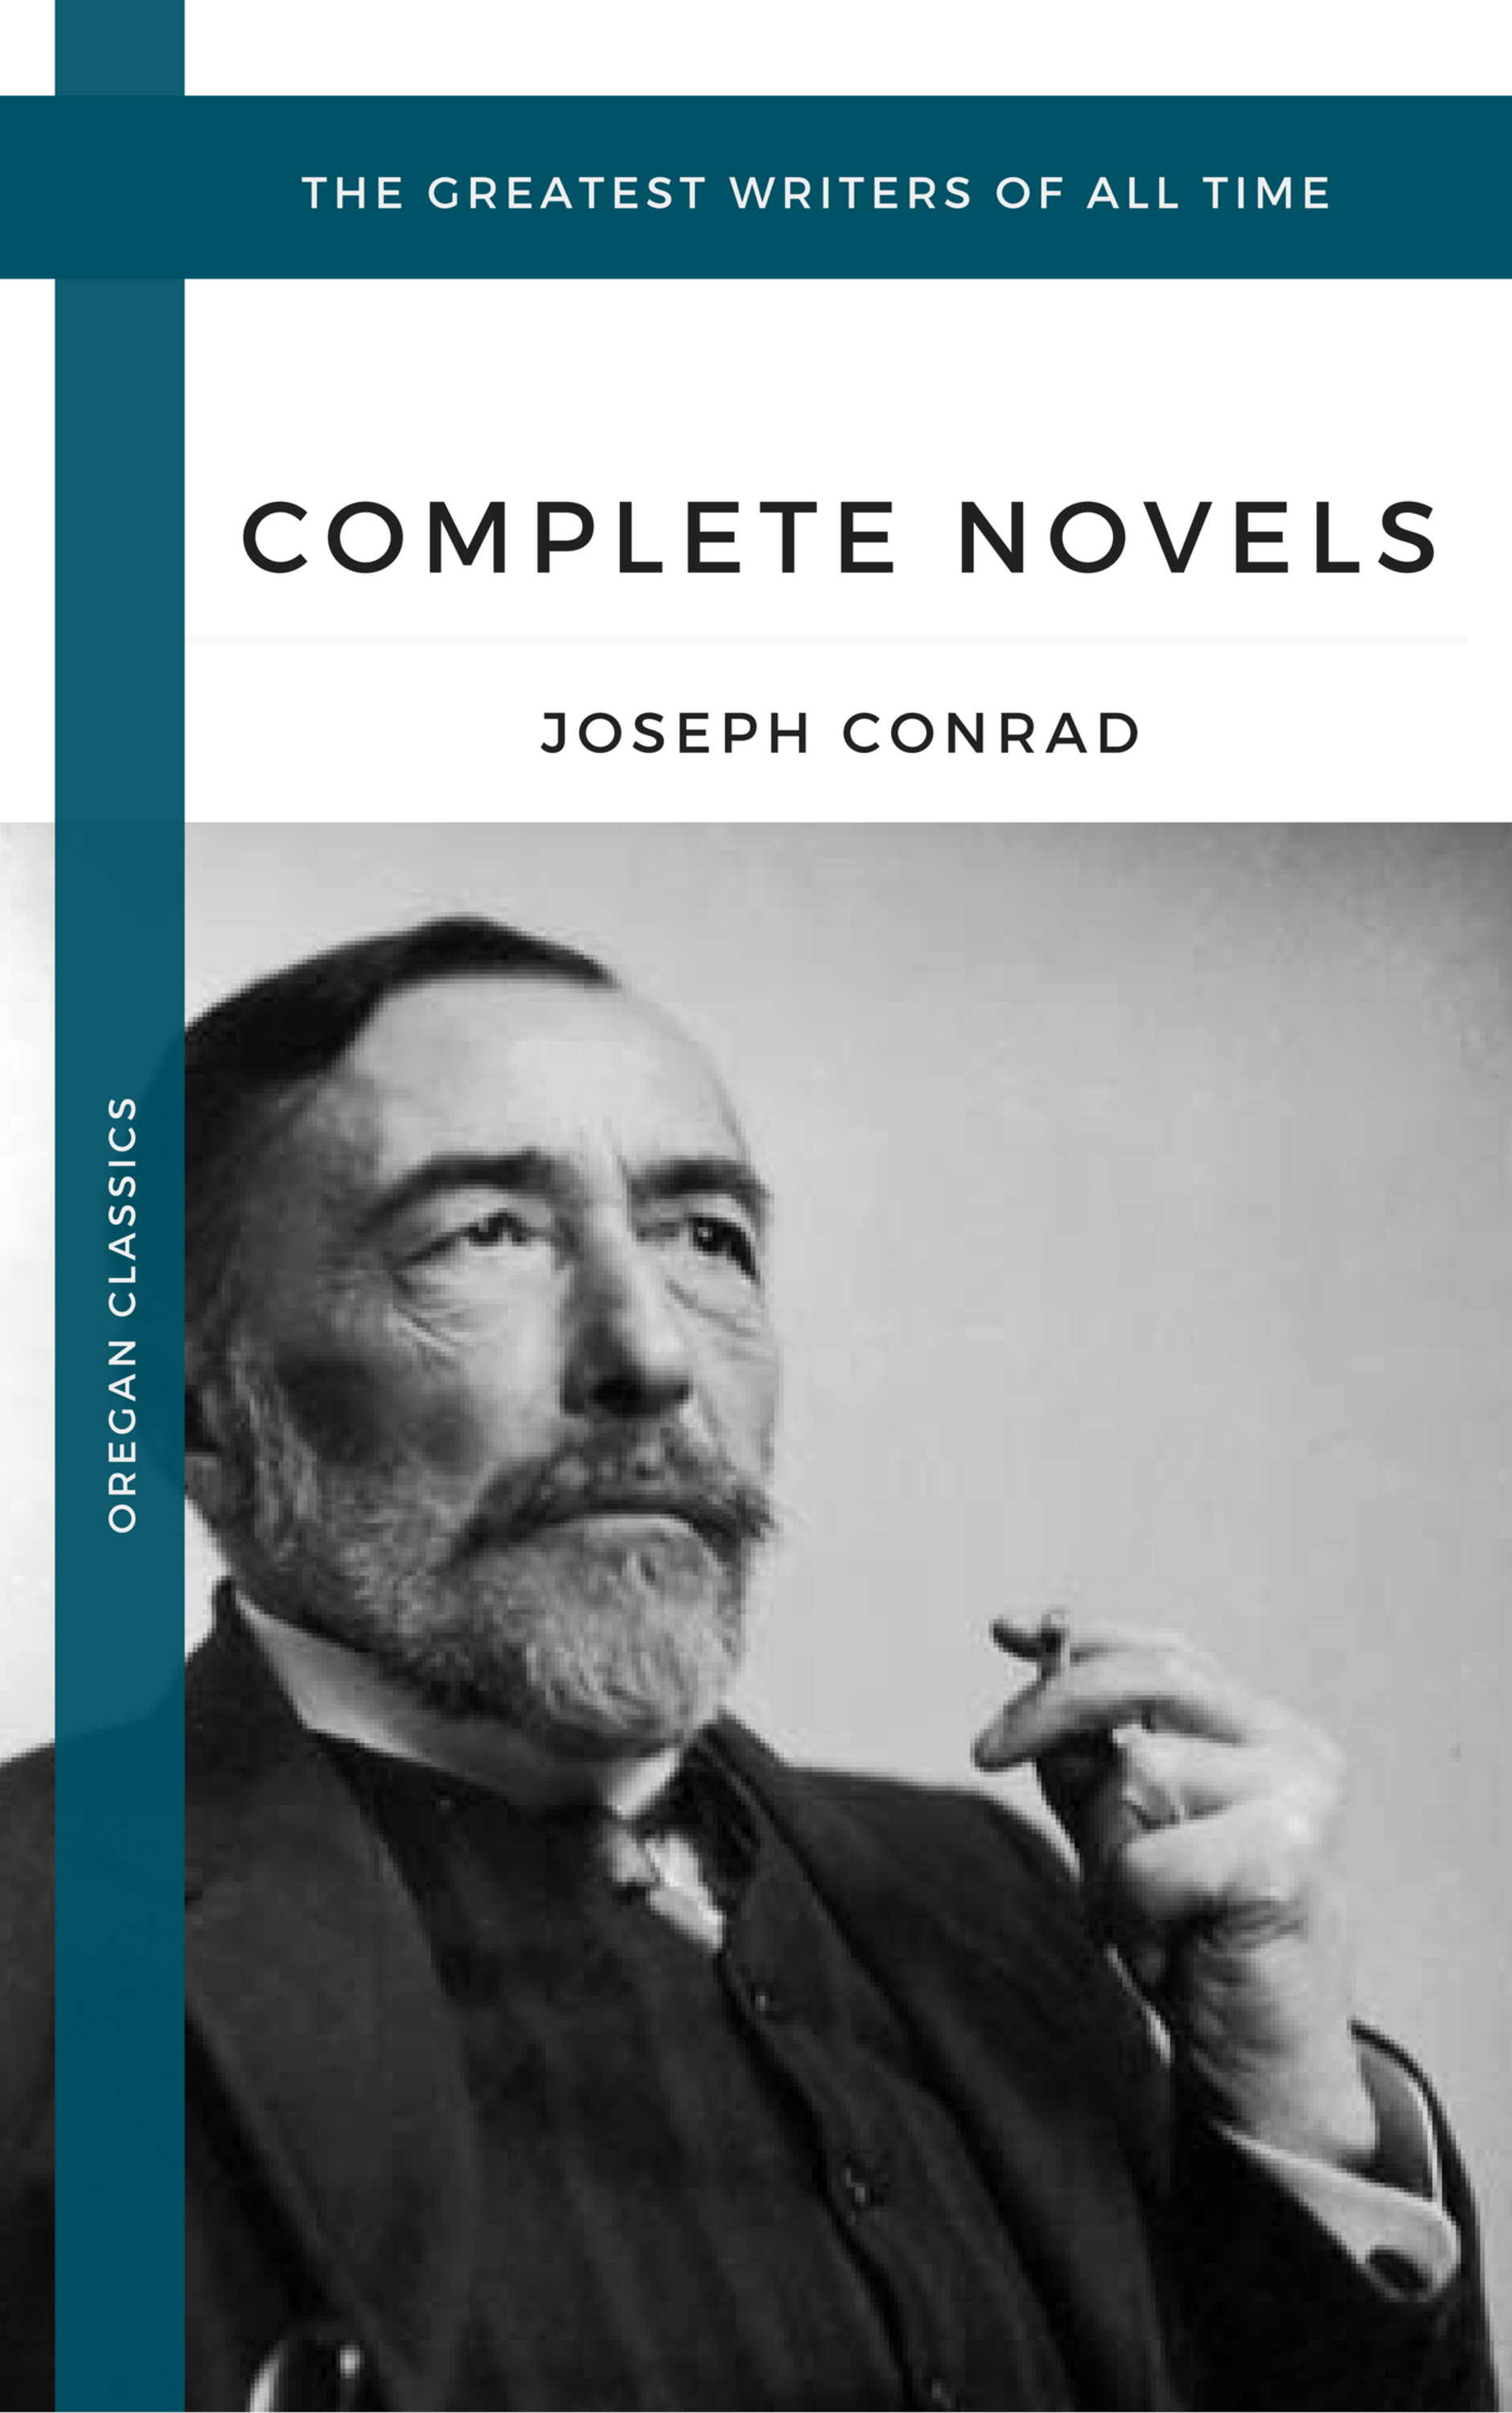 conrad joseph the complete novels oregan classics the greatest writers of all time